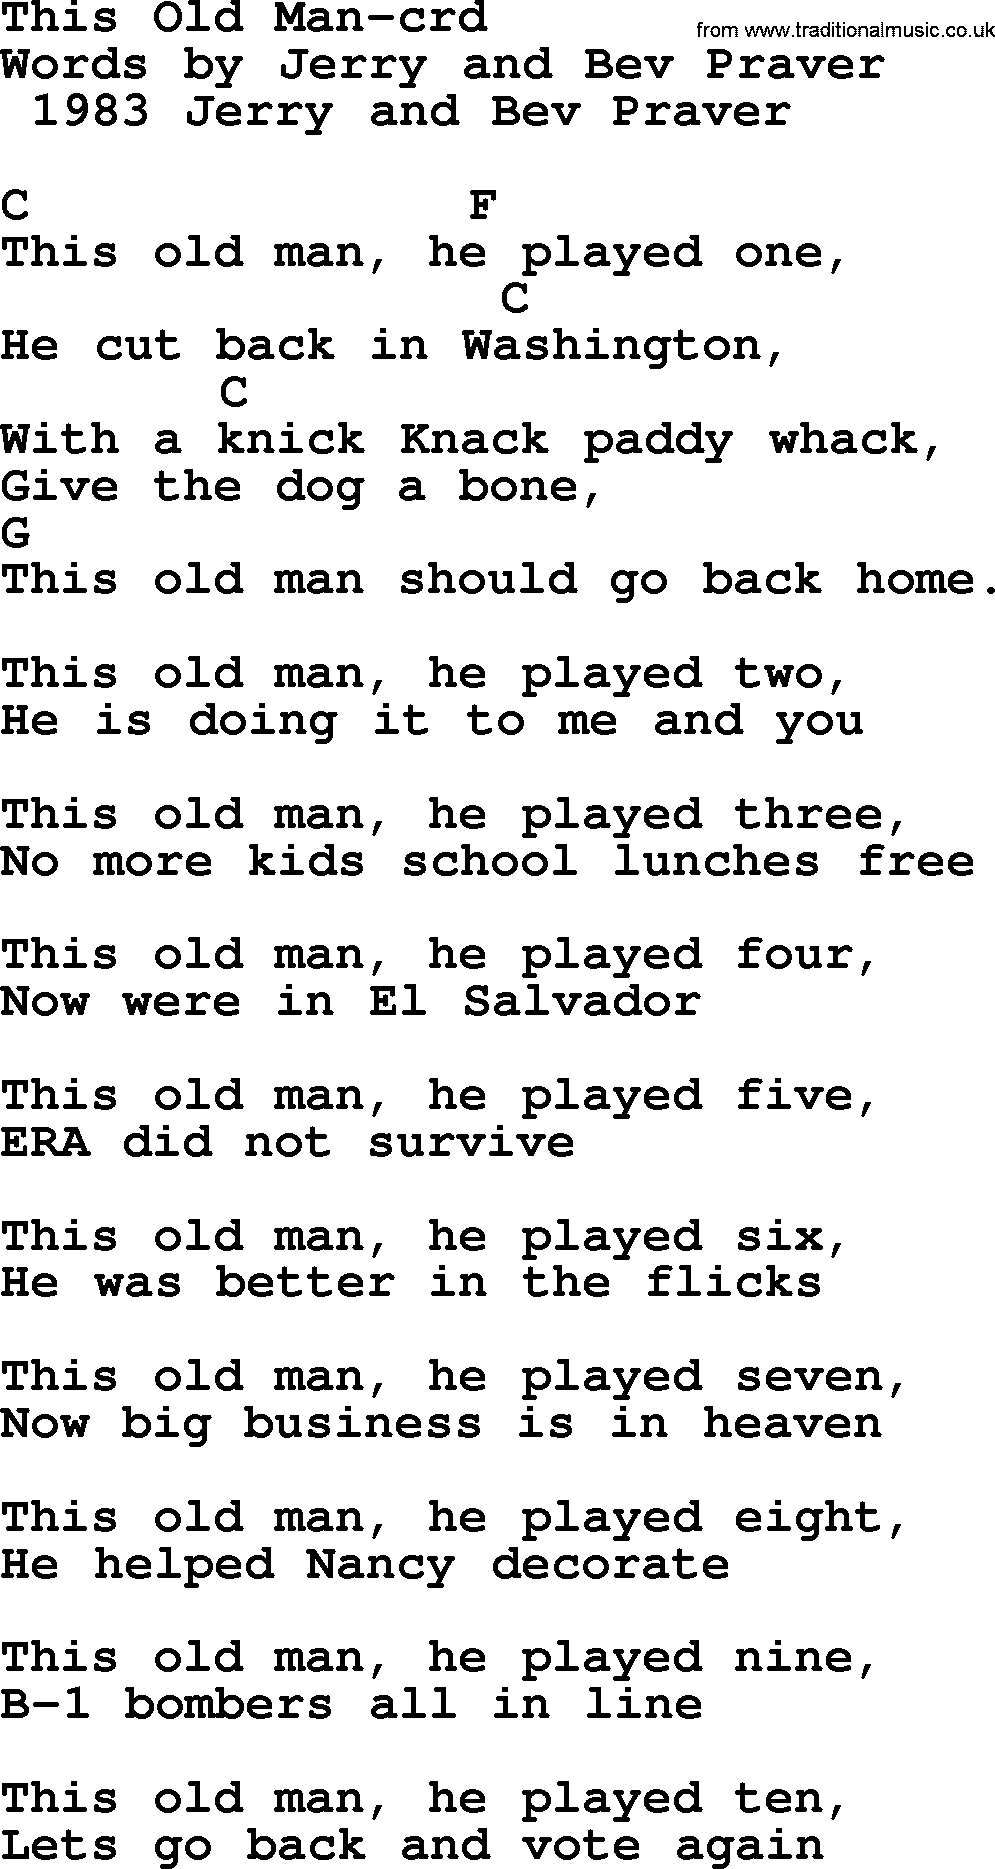 Old Man Chords Pete Seeger Song This Old Man Lyrics And Chords